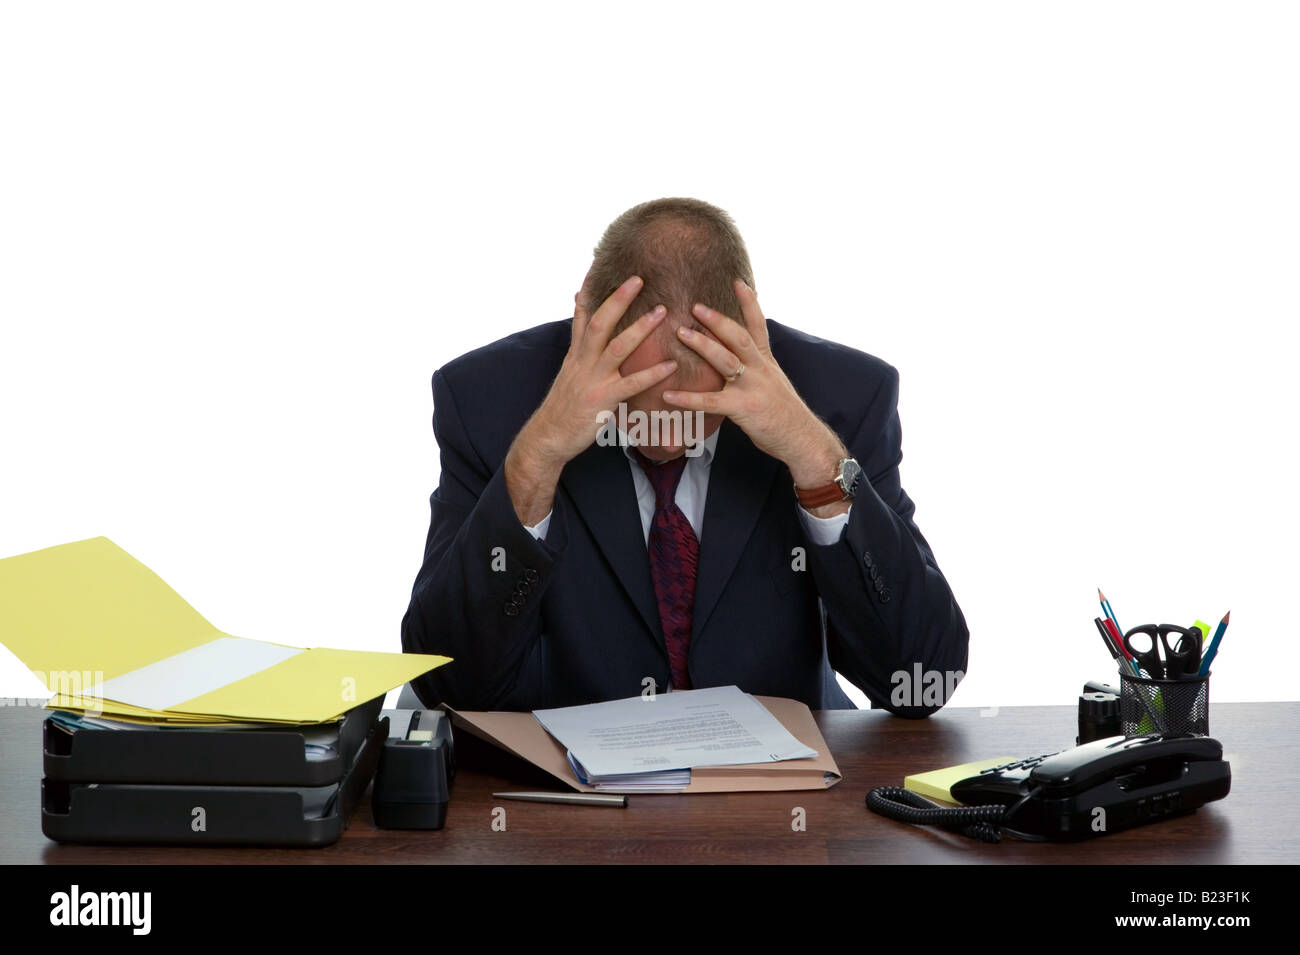 Businessman sat at his desk with hands on his head looking at some paperwork bored with his mundane job - Stock Image